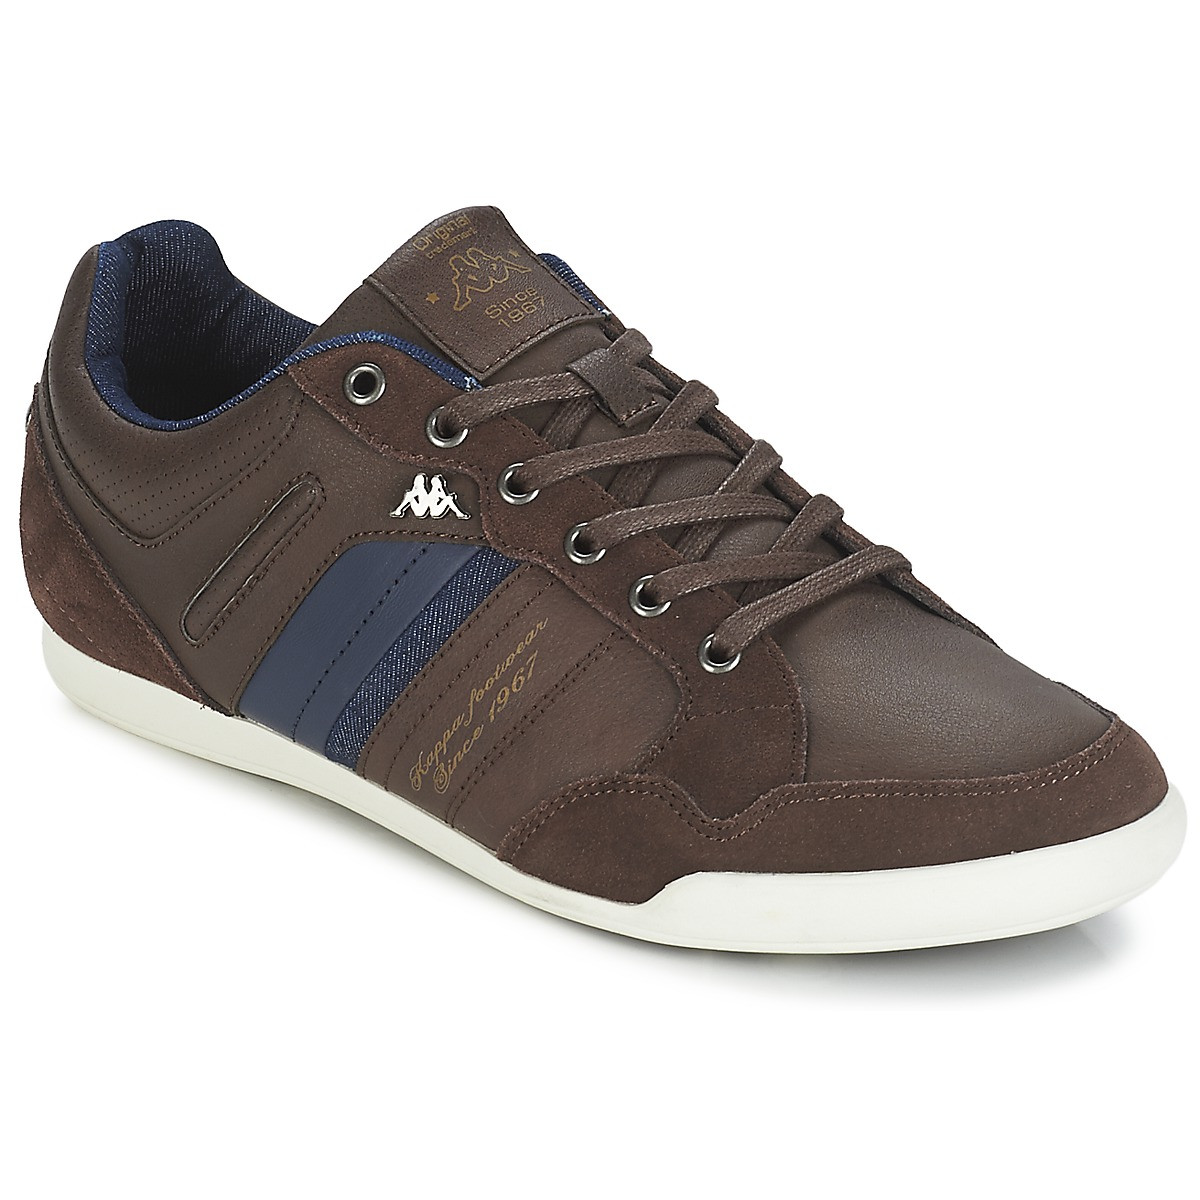 Chaussure homme Baskets KAPPA pas cher basses Homme Kinay A MARRON TOiPXwZuk